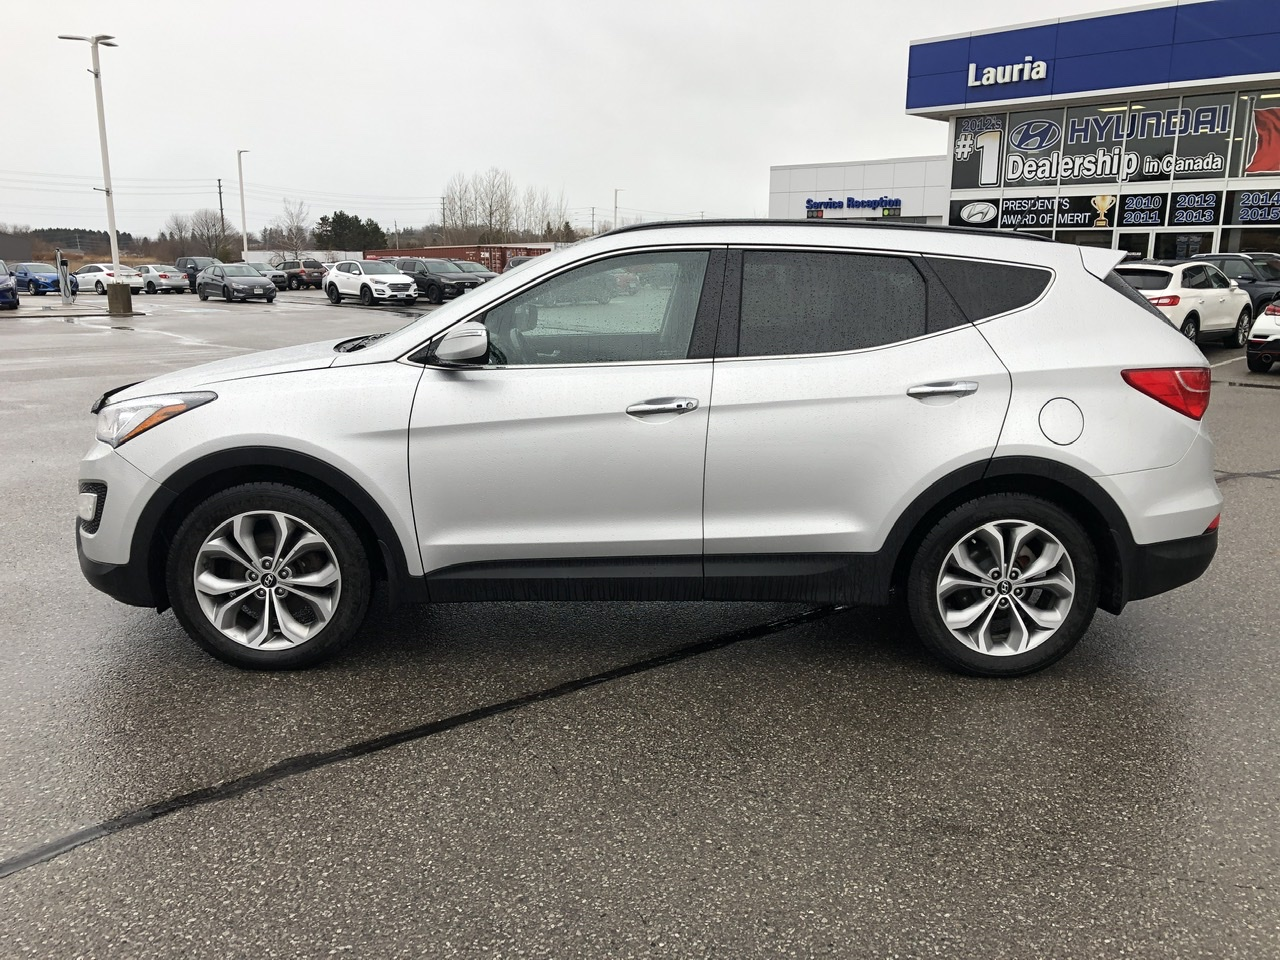 Pre-Owned 2014 Hyundai Santa Fe Sport 2.0T AWD Limited - Loaded!